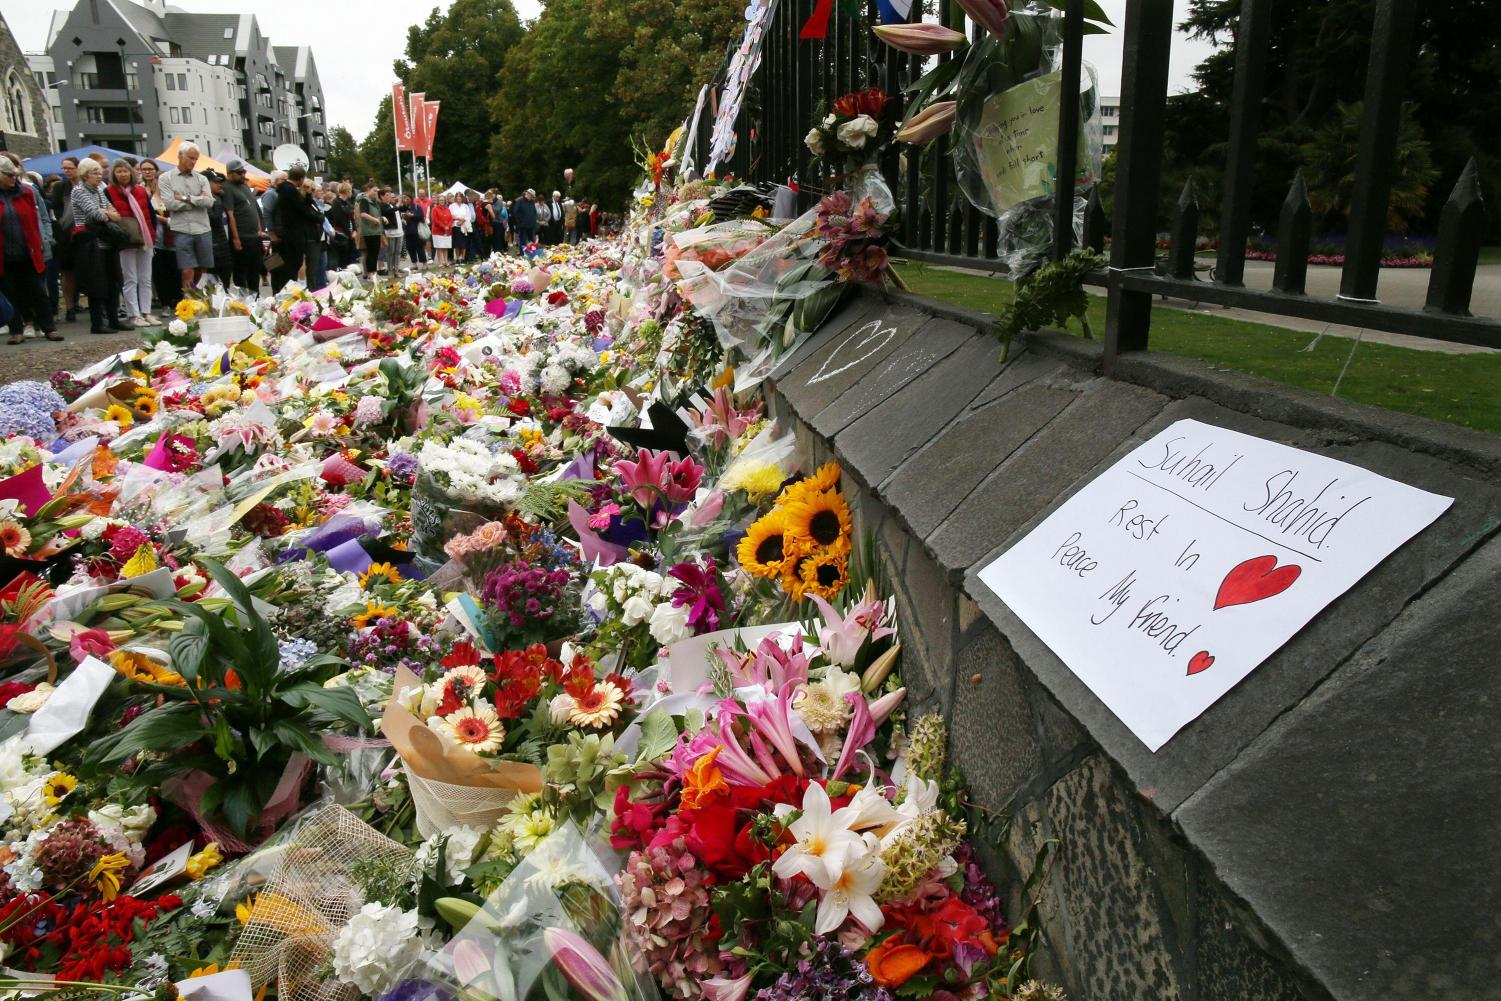 People from around the world mourned with Christchurch, New Zealand after the mass shooting.